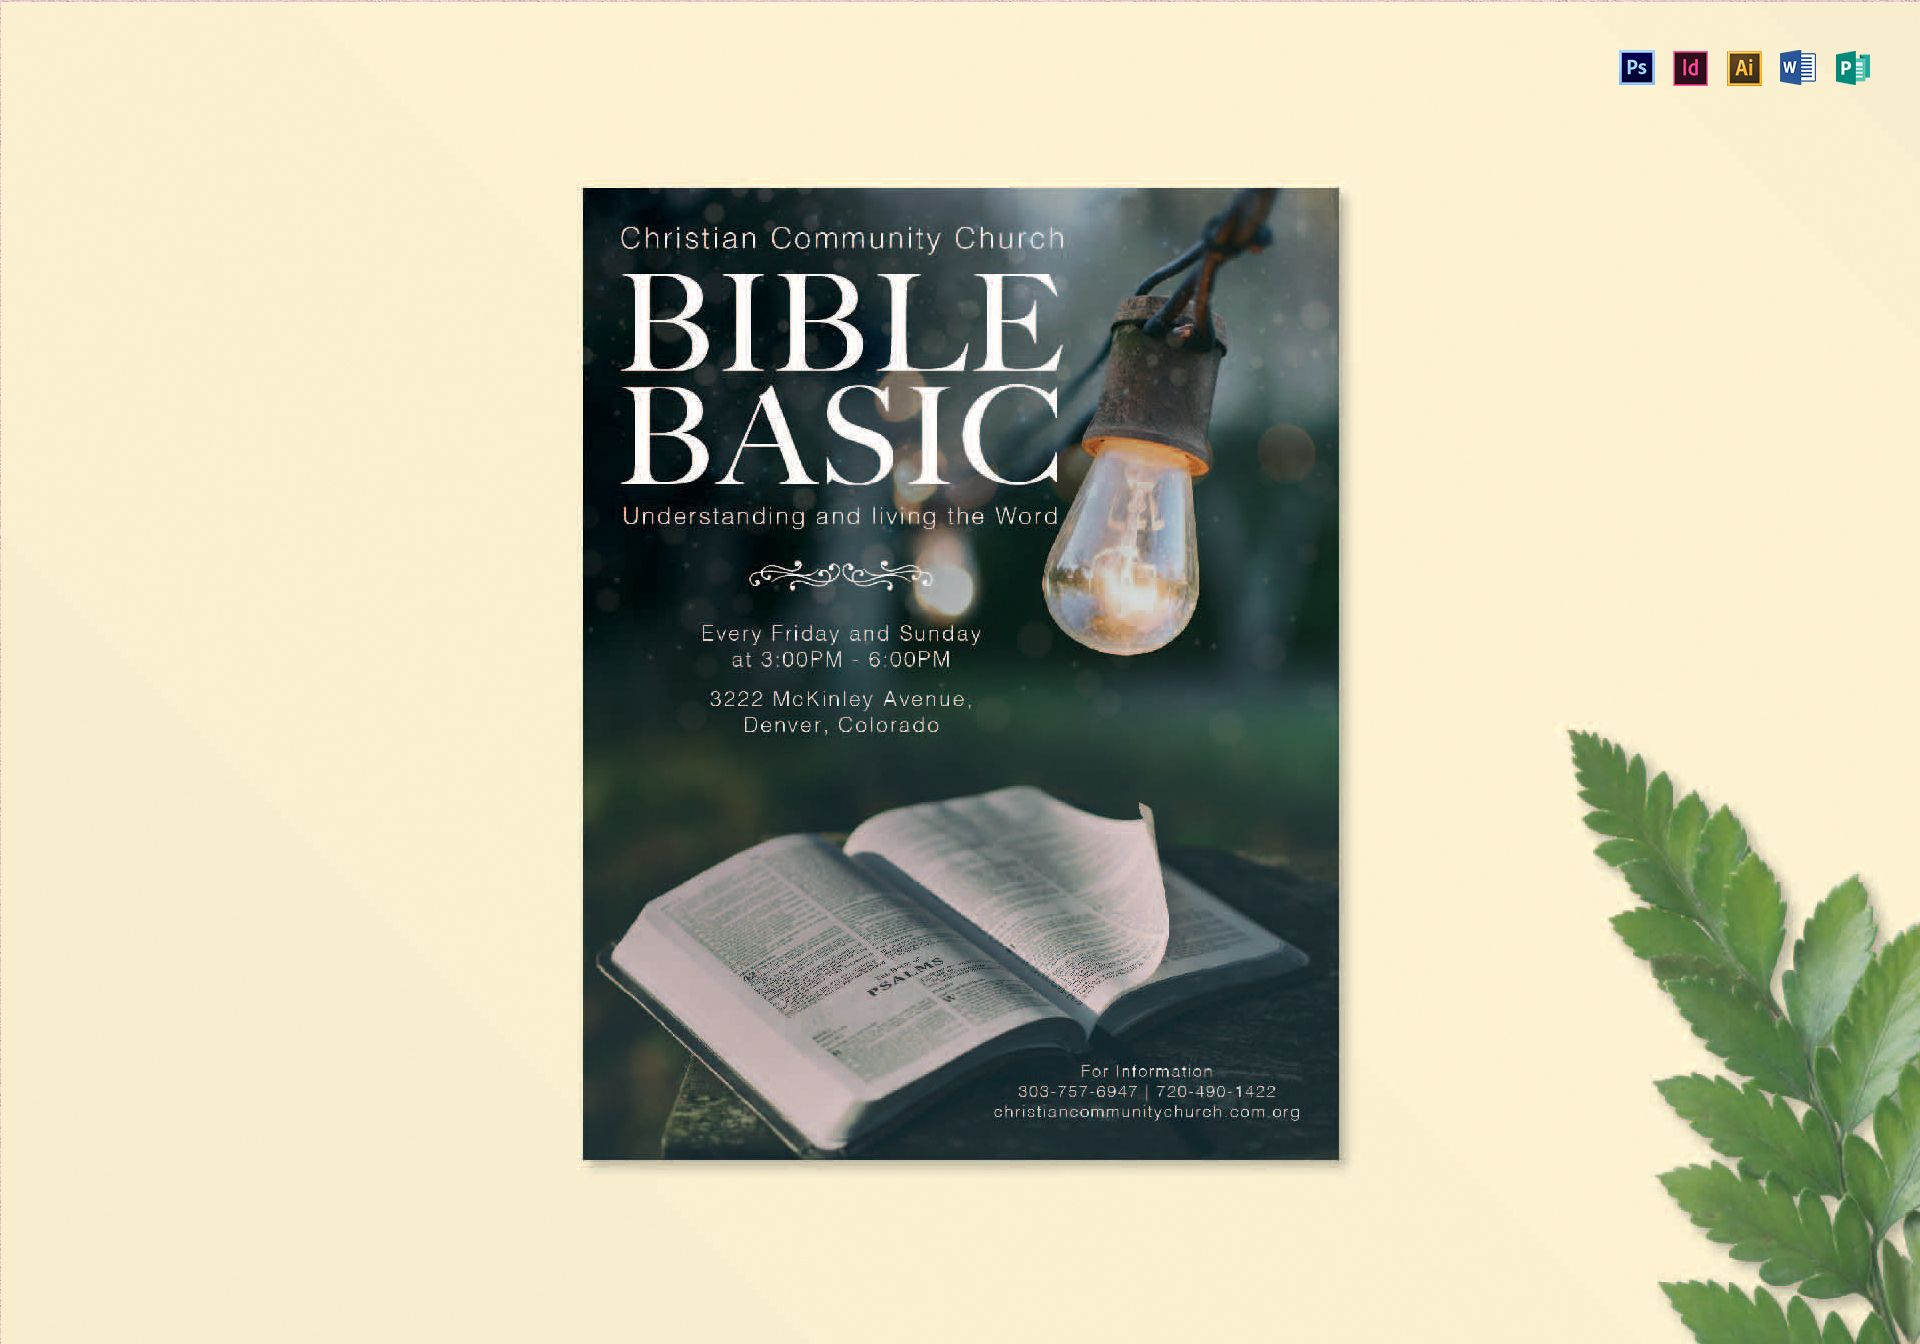 Bible Basic Flyer